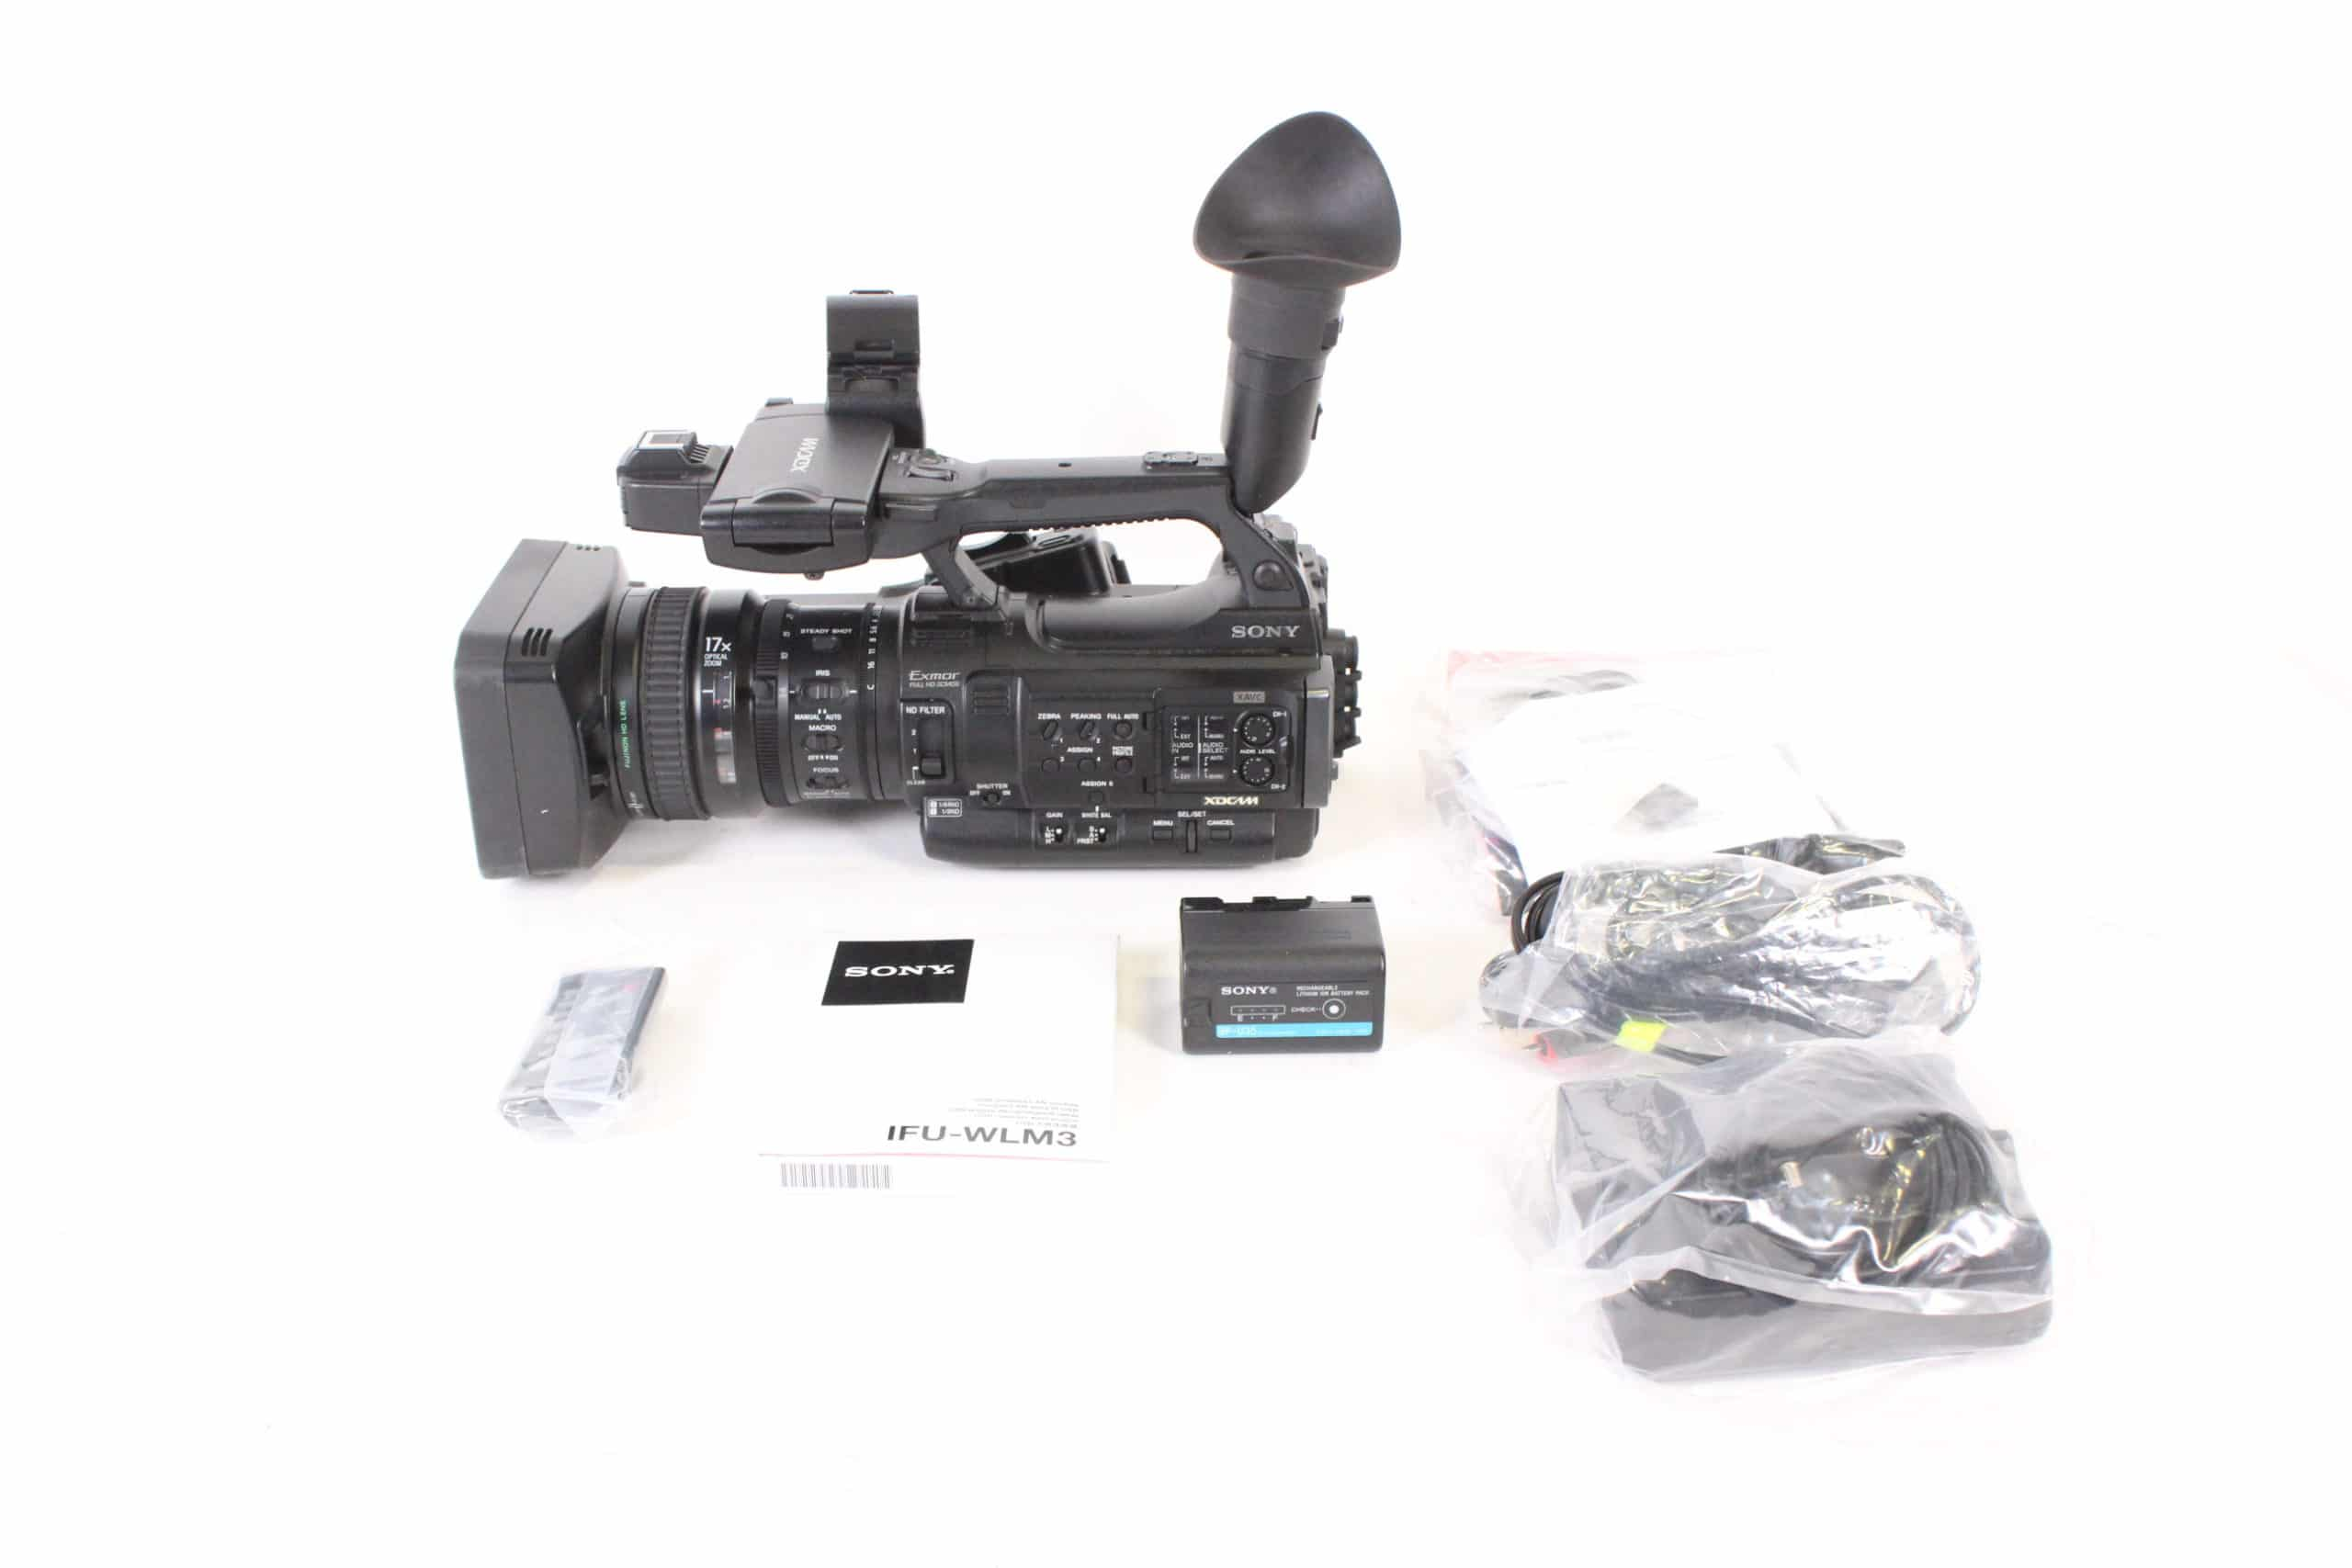 sony-pxw-x400-xdcam-2-3-weight-balanced-advanced-shoulder-camcorder-w-canon-vcl-b08x200-zoom-lens-electronic-viewfinder-accessories-676-hrs-original-box-copy MAIN